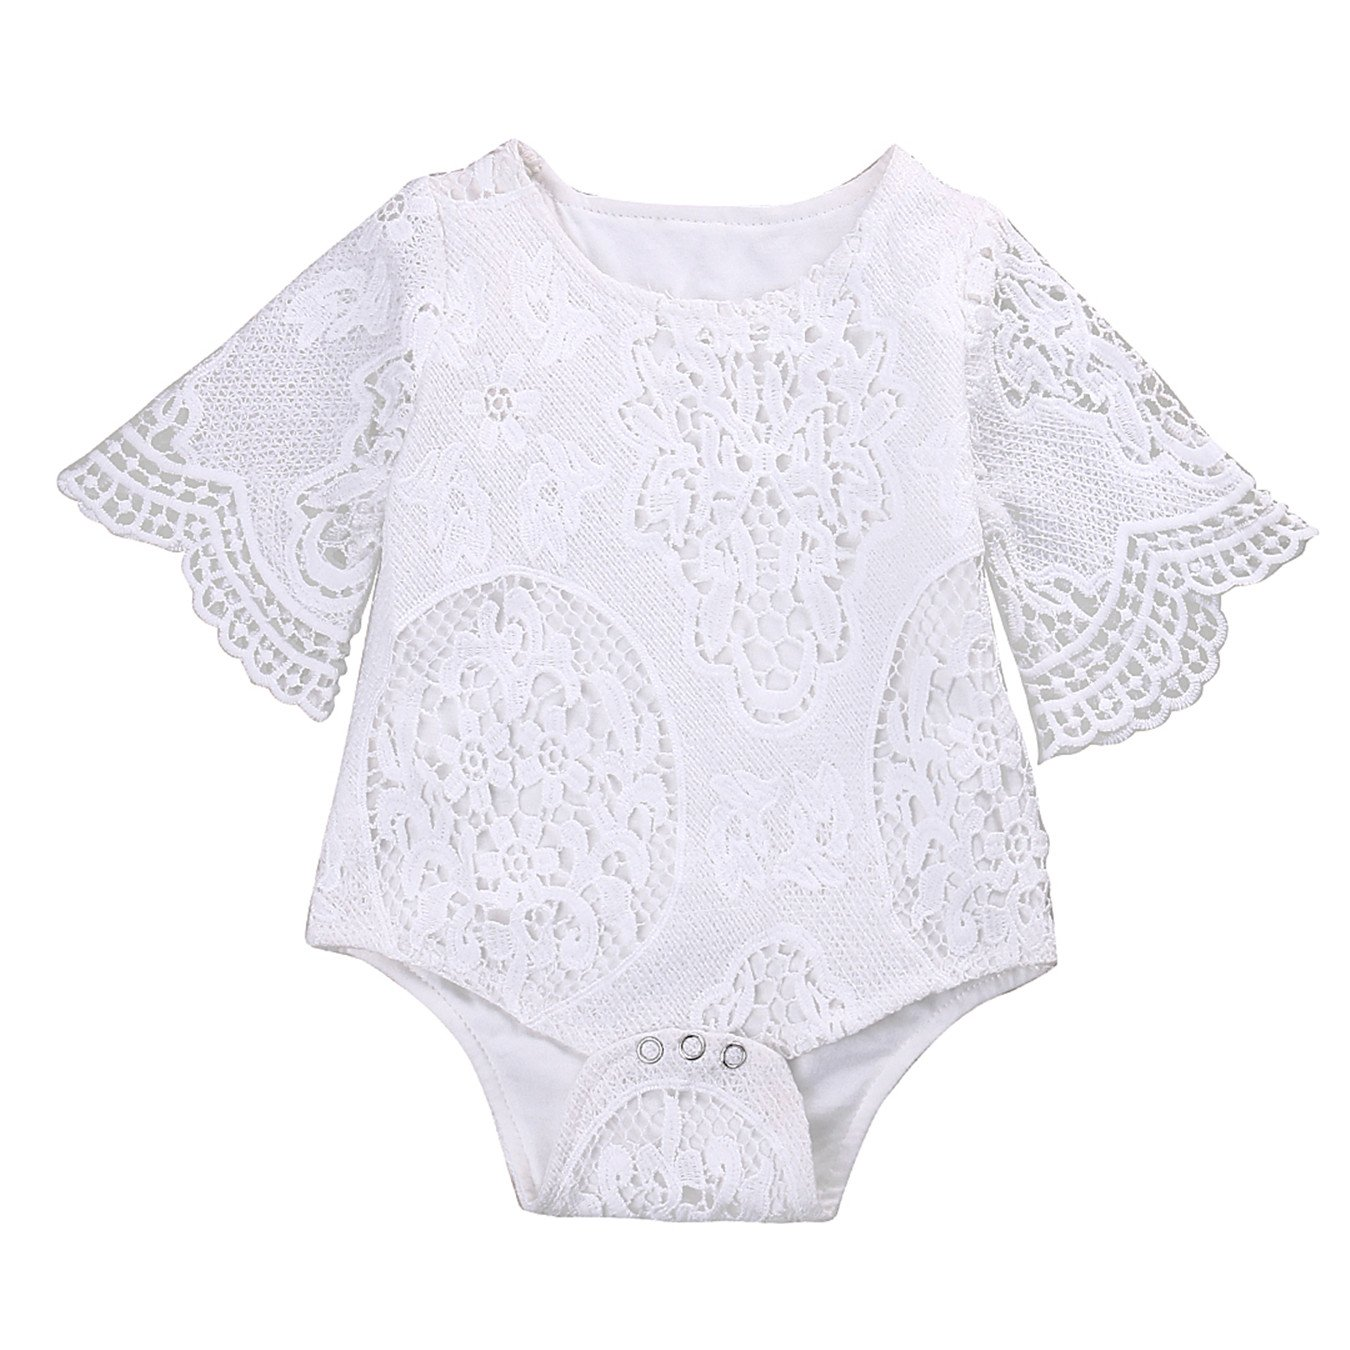 B Annie Lovely Gifts Baby Girls White Ruffles Sleeve Romper Infant Lace Jumpsuit Clothes Sunsuit Outfits